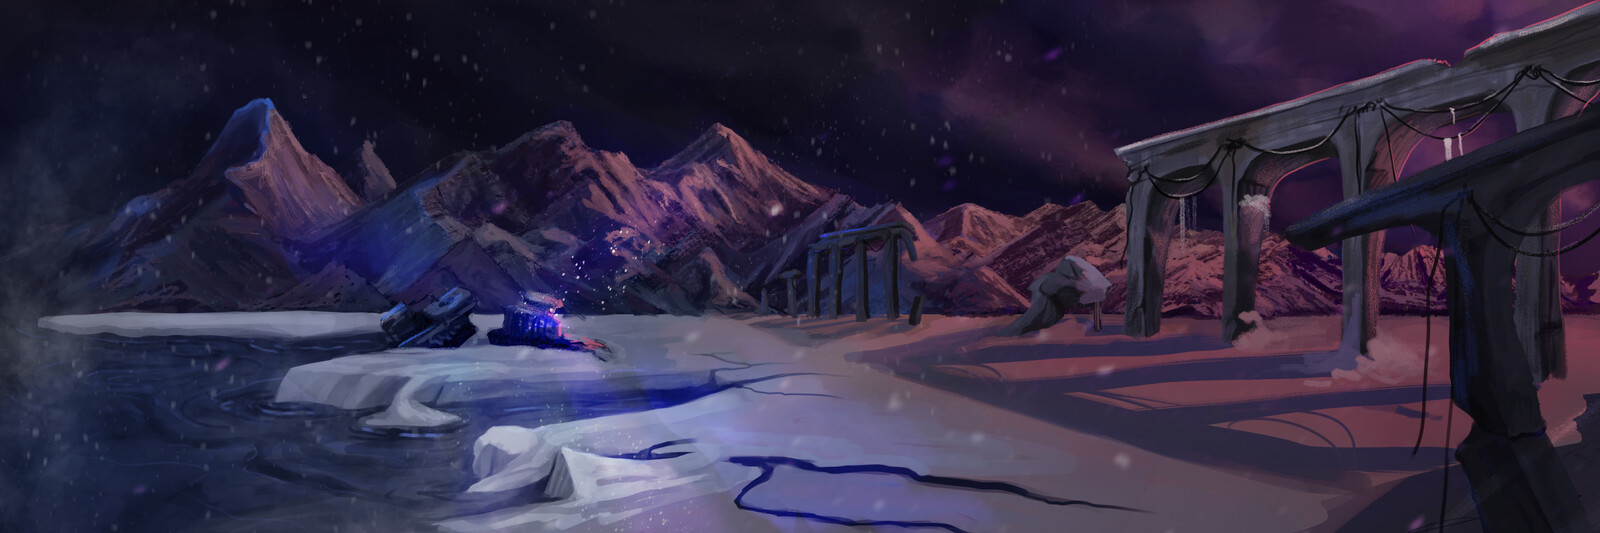 Environment Concept - Frozen Wasteland